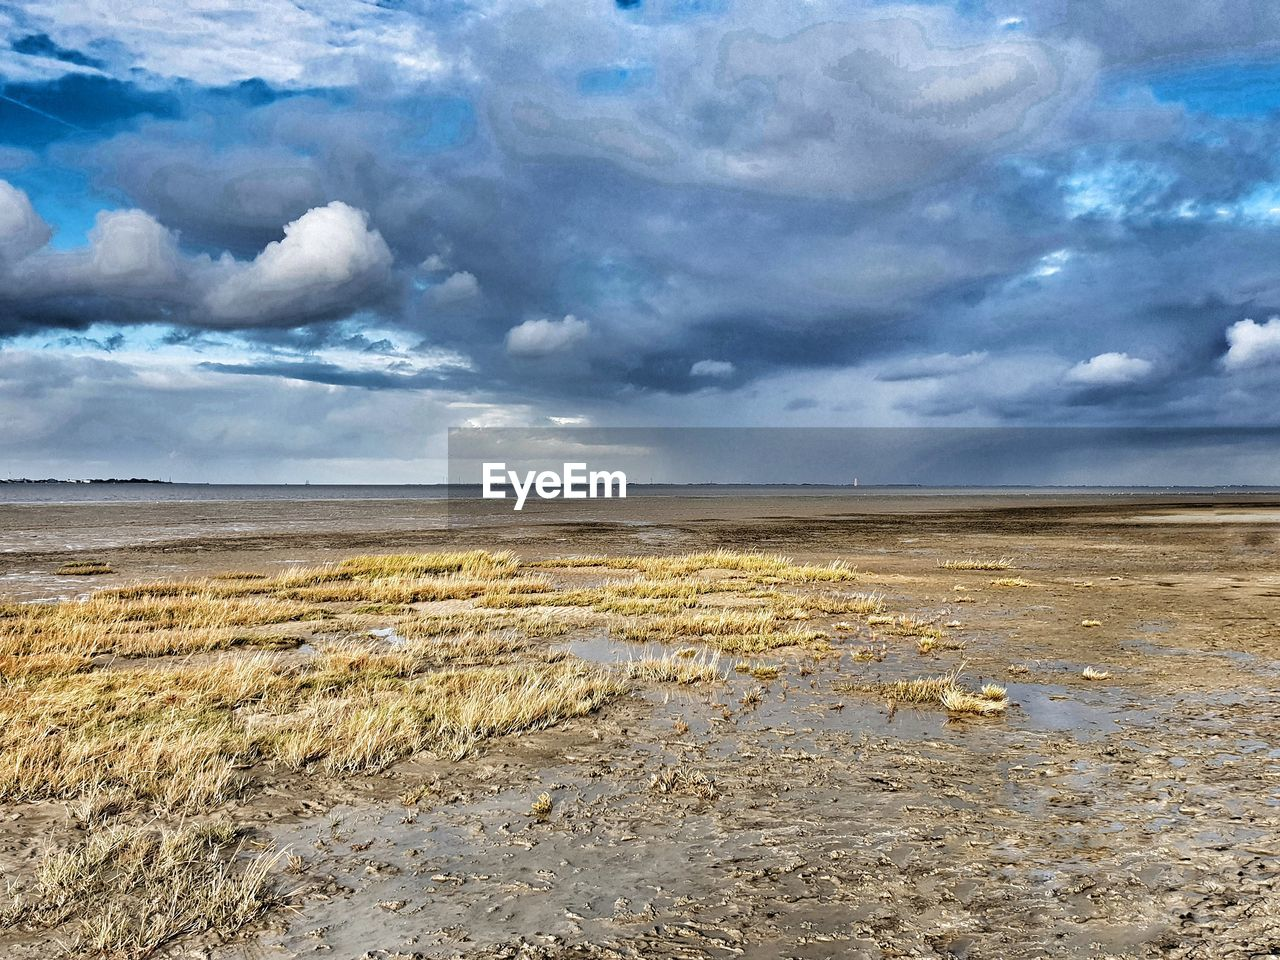 cloud - sky, sky, tranquil scene, tranquility, beauty in nature, environment, landscape, scenics - nature, land, nature, no people, day, horizon, non-urban scene, horizon over land, outdoors, remote, water, beach, arid climate